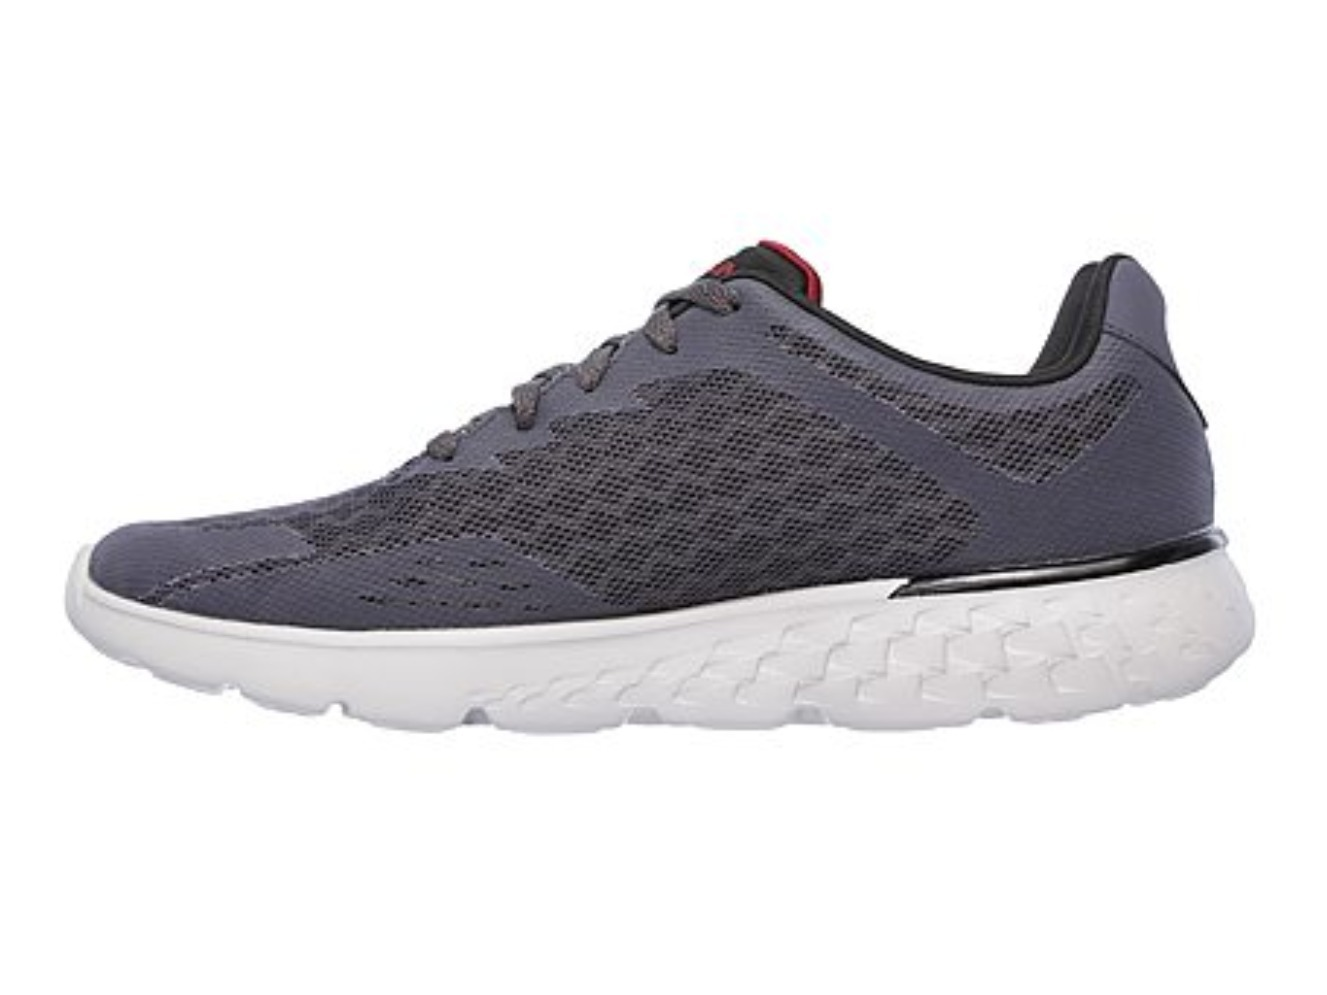 Skechers GOrun400 - Disperse GrayRed Men's スケッチャーズ